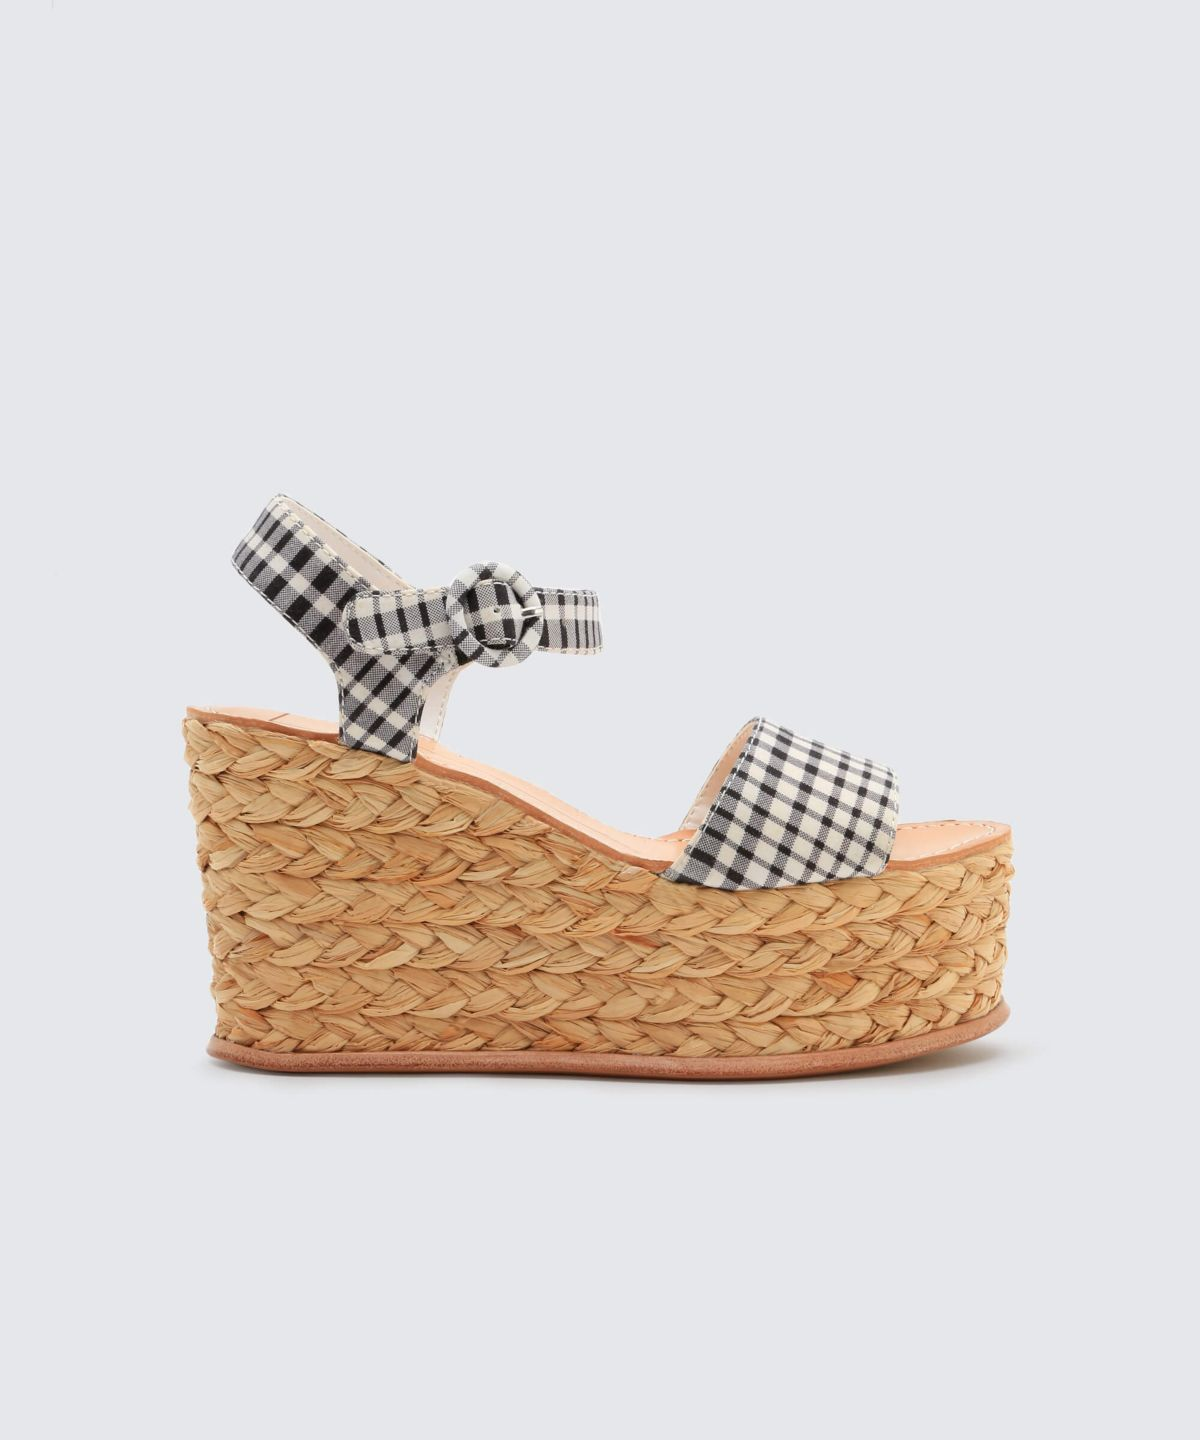 Dolce Vita Leather Platform Wedges Outlet Cost O3nbt7